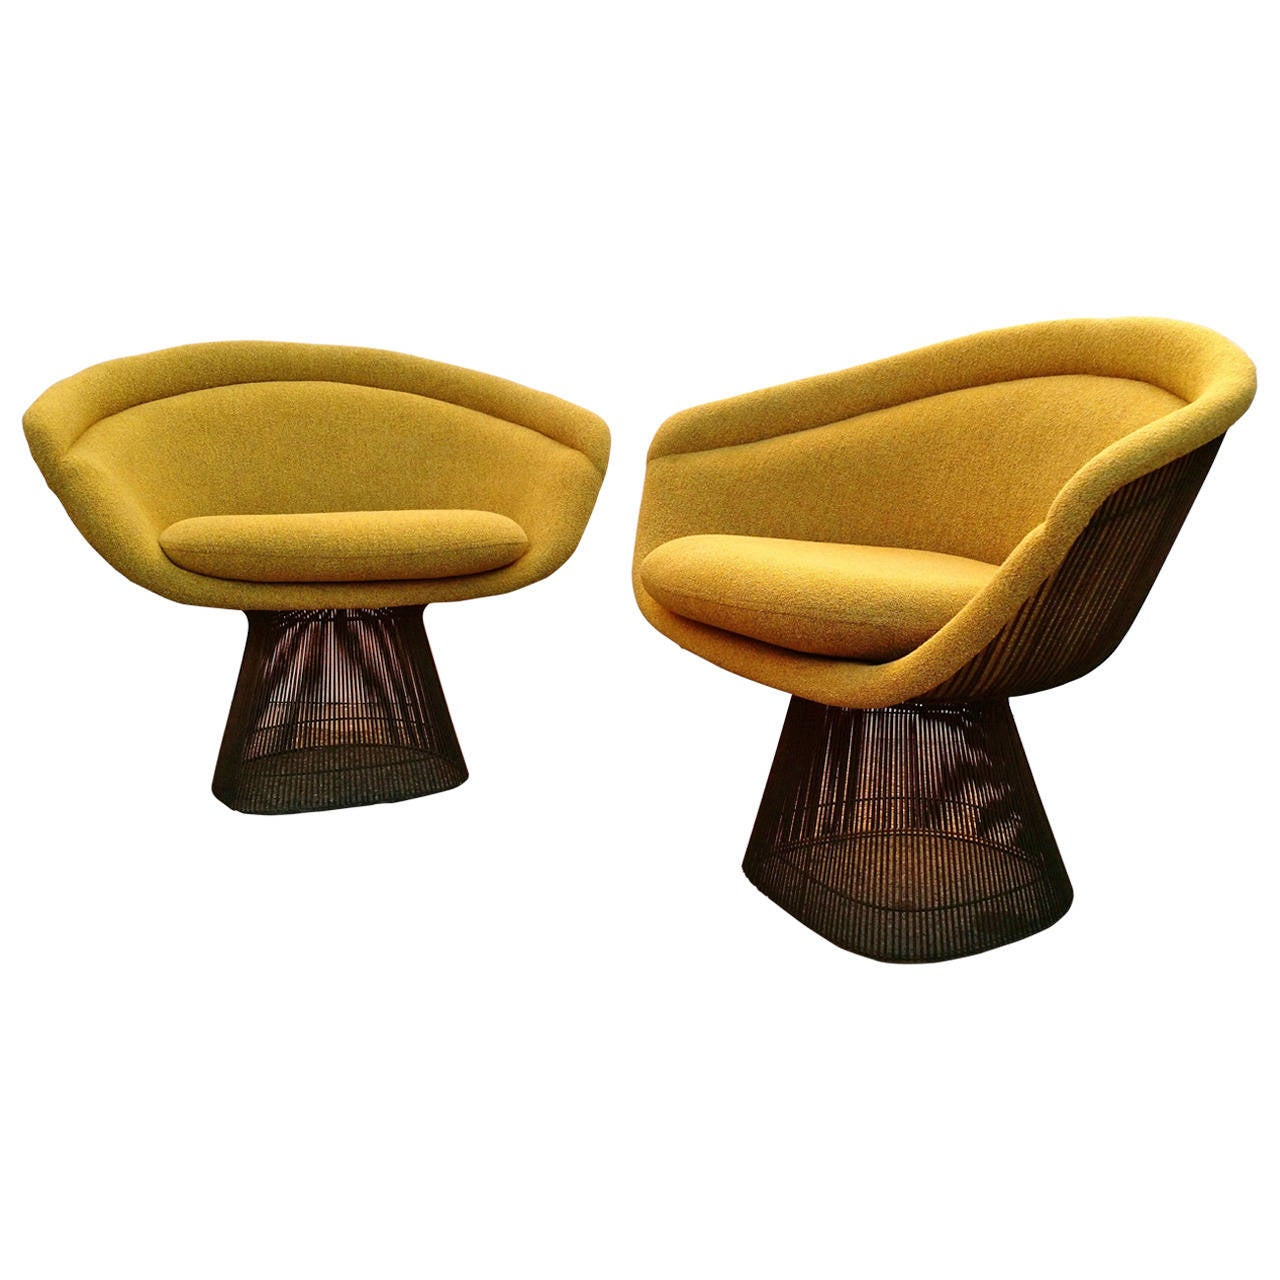 mid century modern knoll warren platner lounge chairs with bronze wire